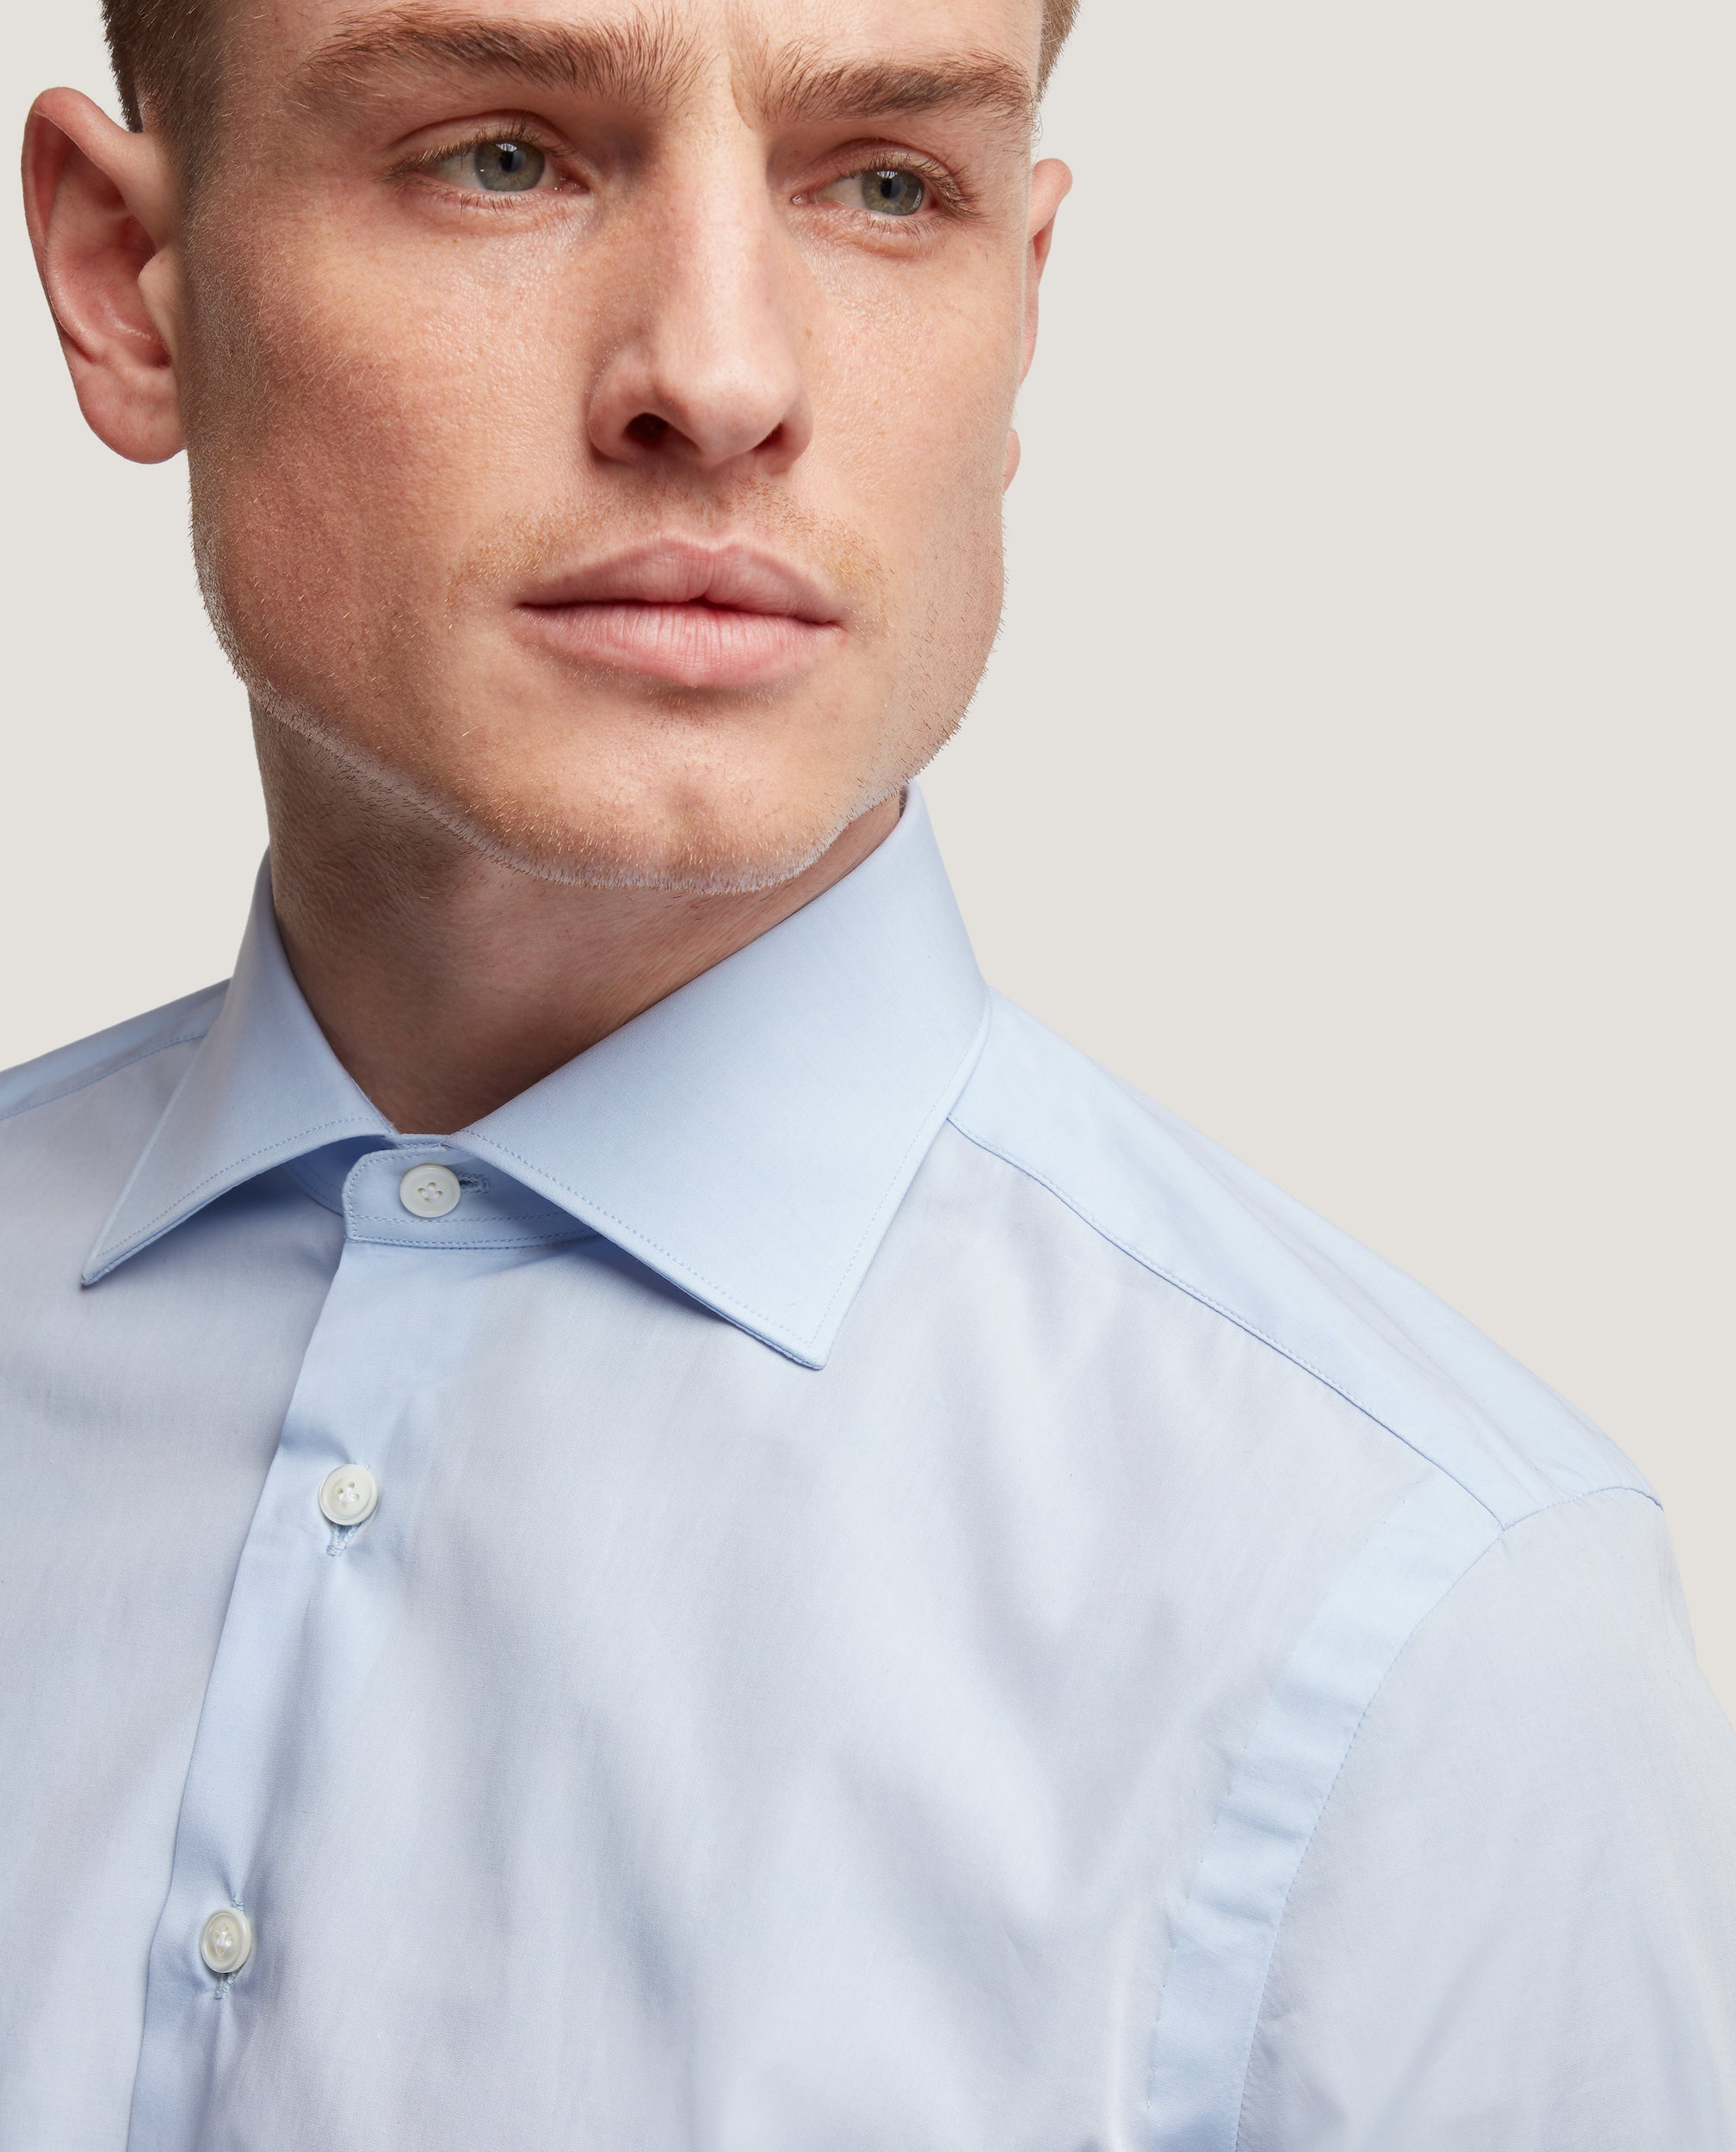 FINN Slim fit shirt | Double cuff | Poplin